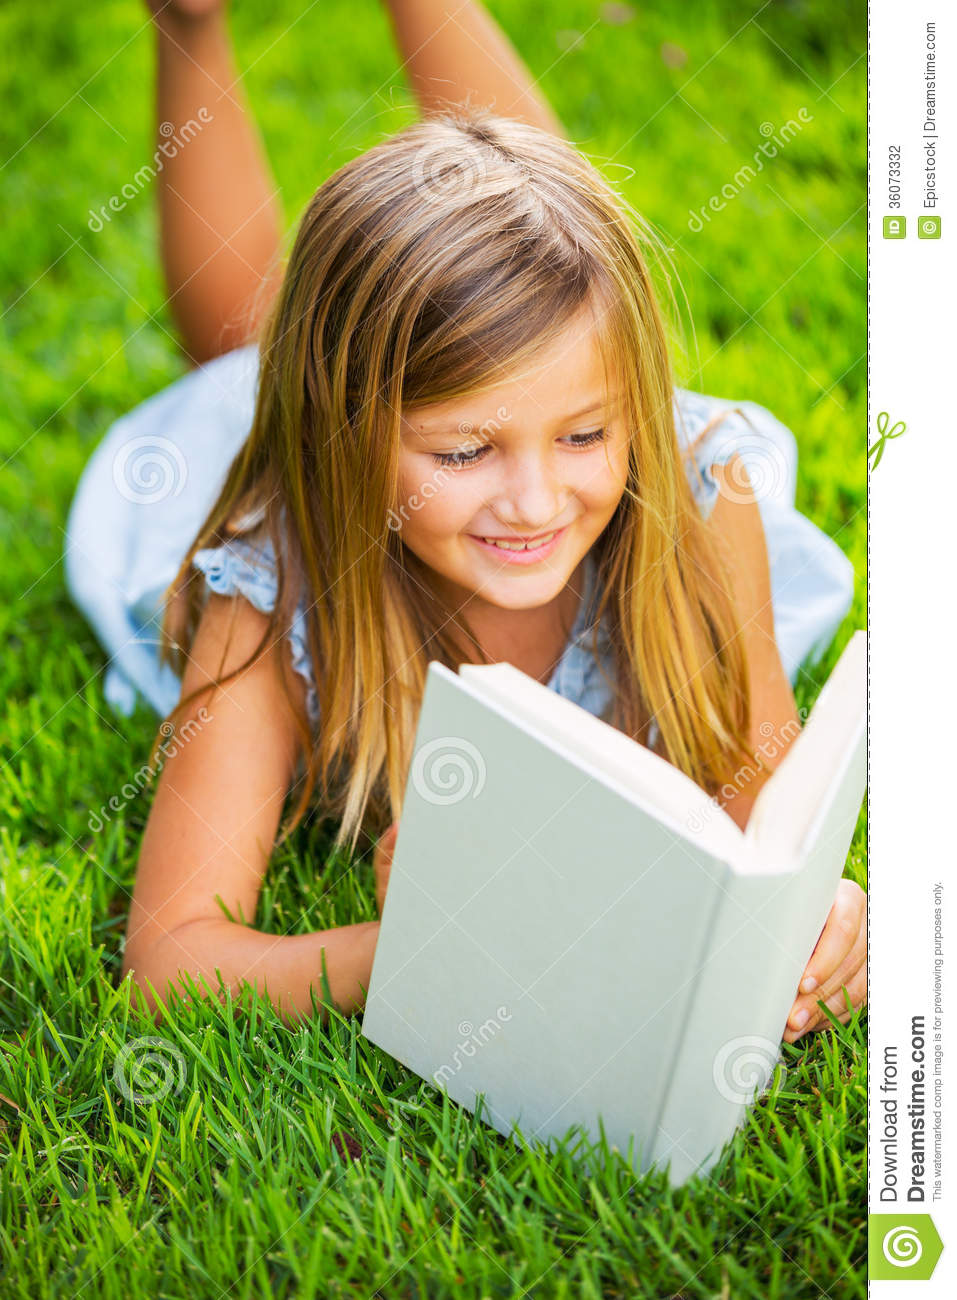 Reading a book outside - 1 7